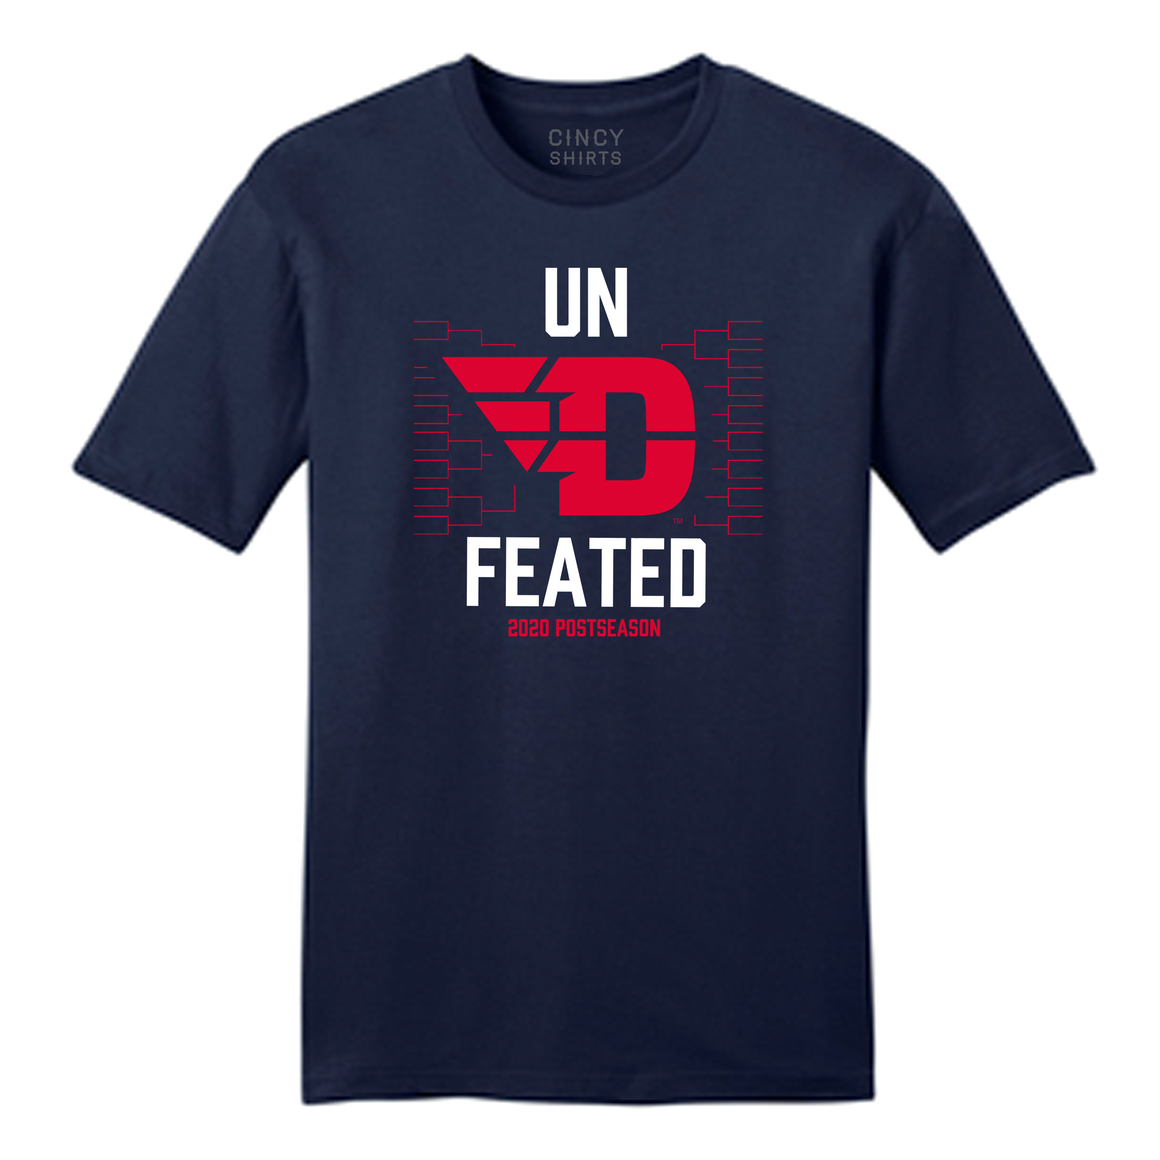 "UN""D""FEATED Dayton Flyers Basketball - Cincy Shirts"